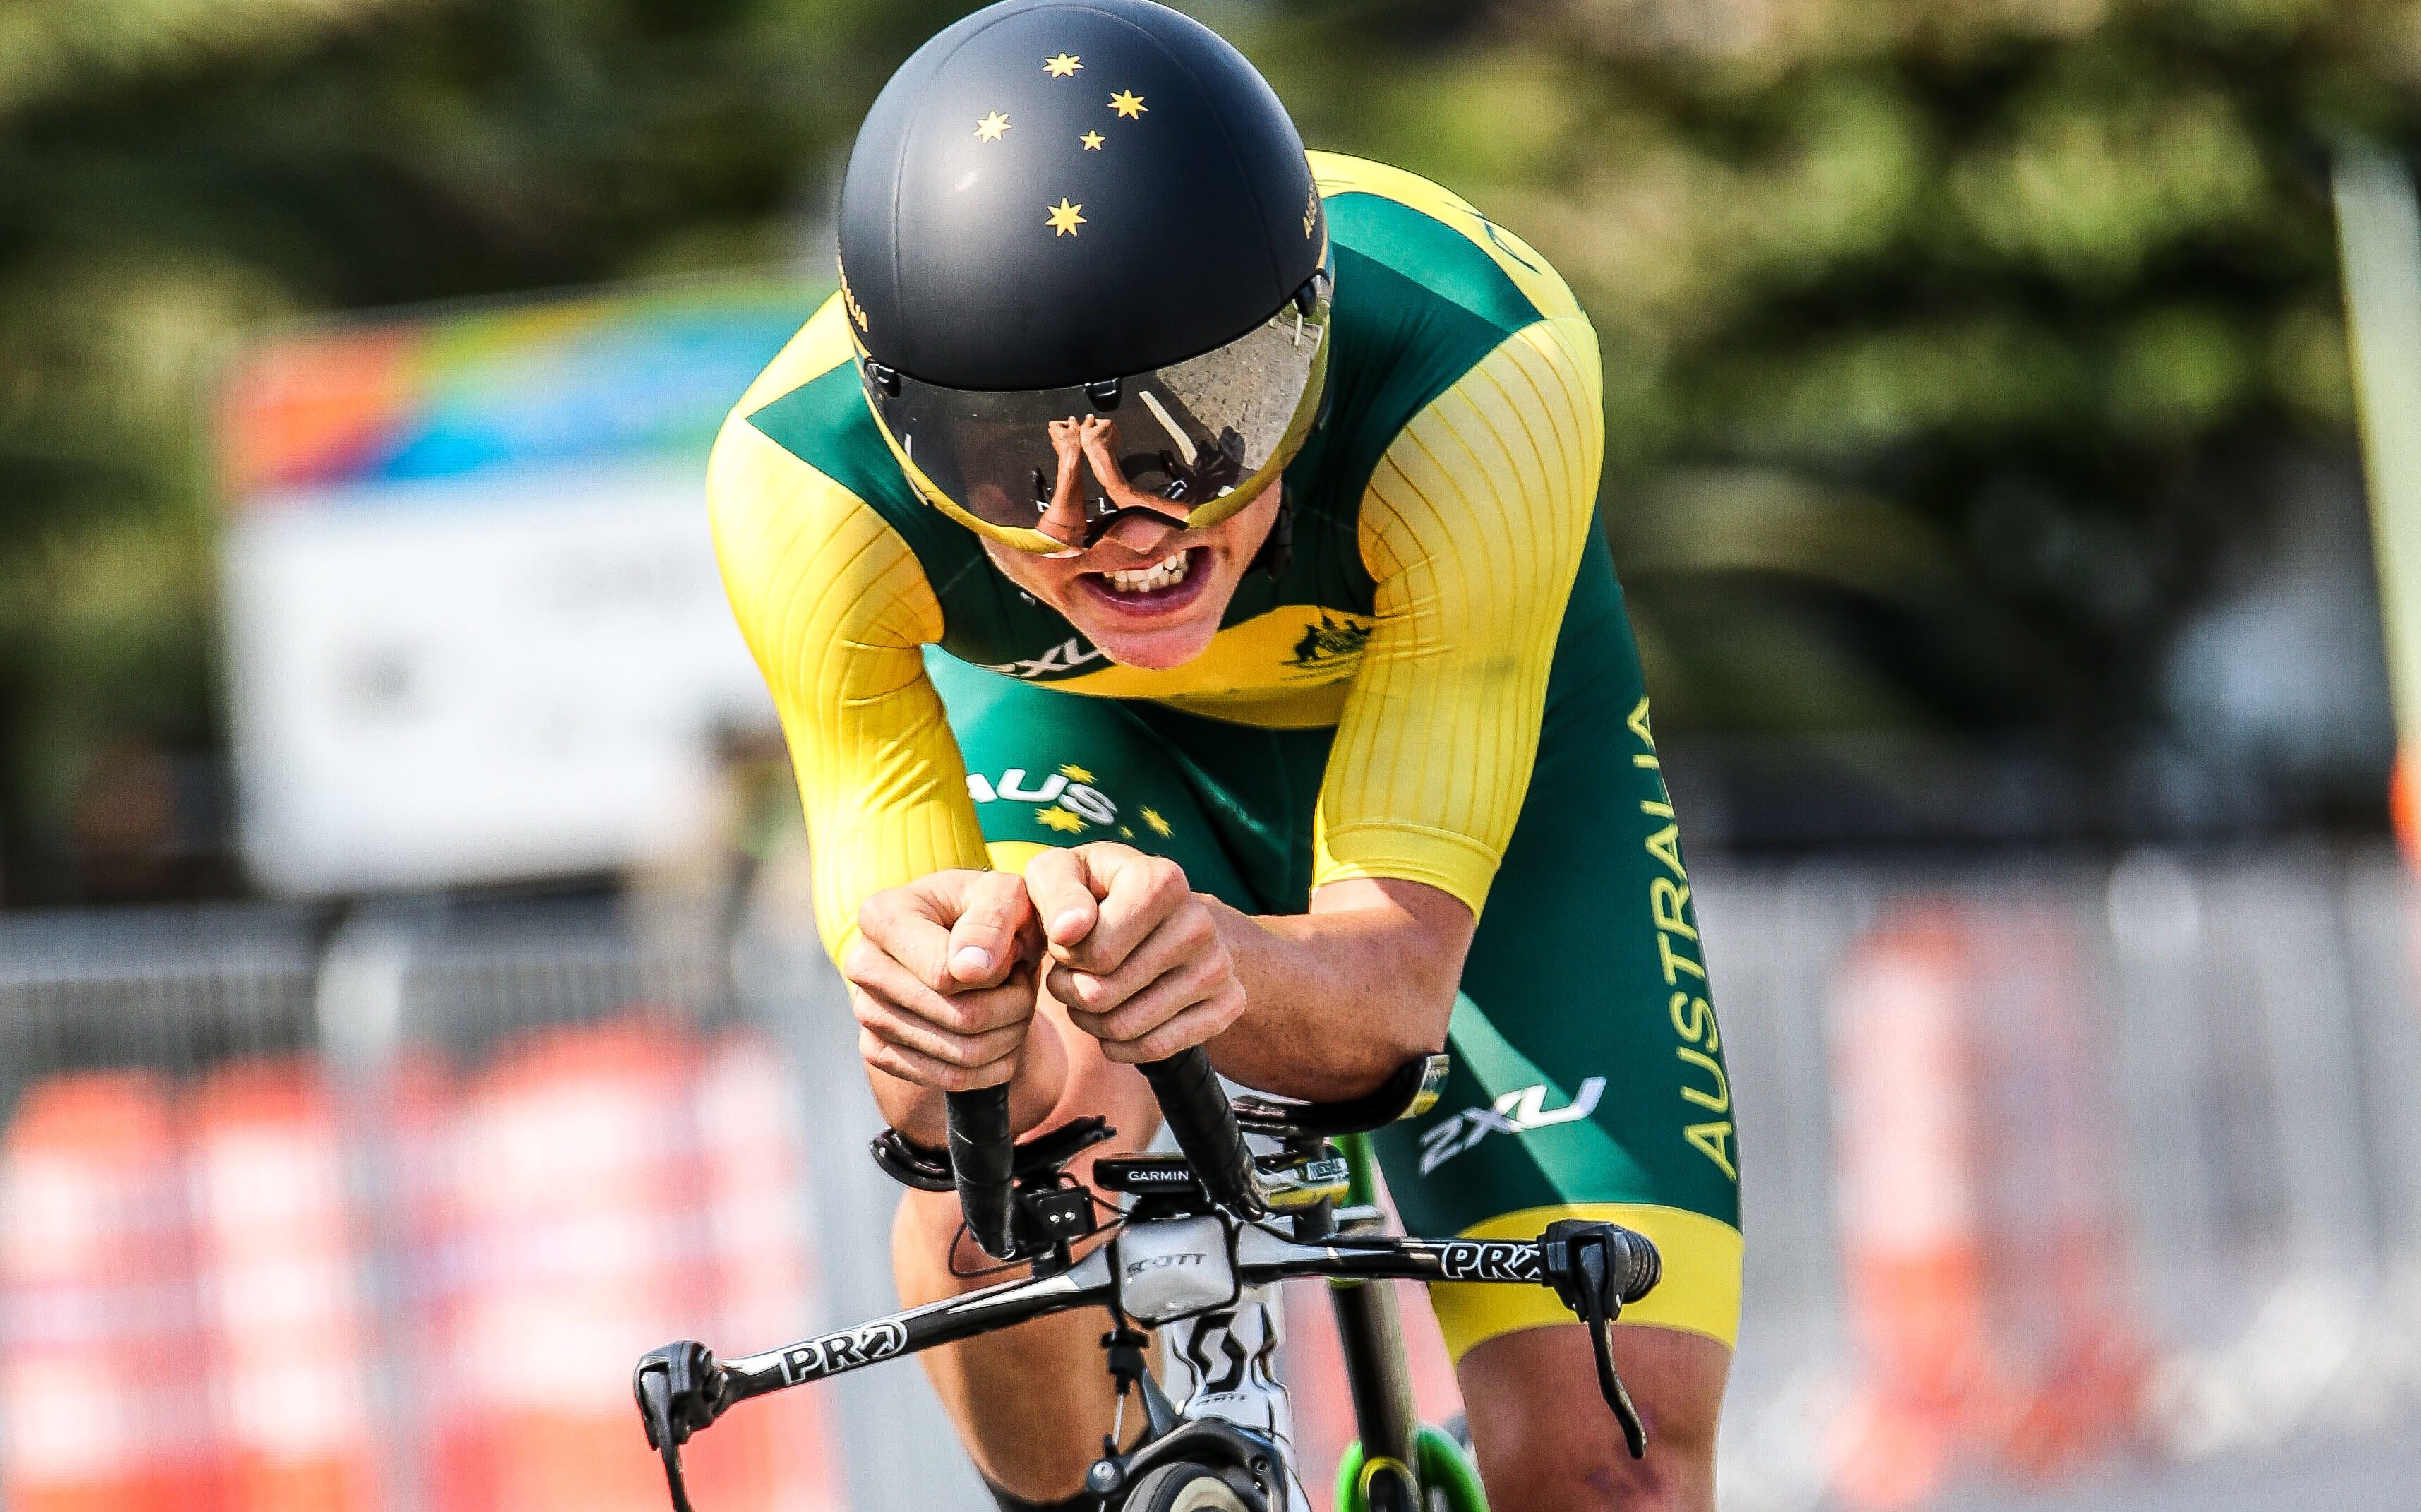 Para-cyclists primed for Worlds